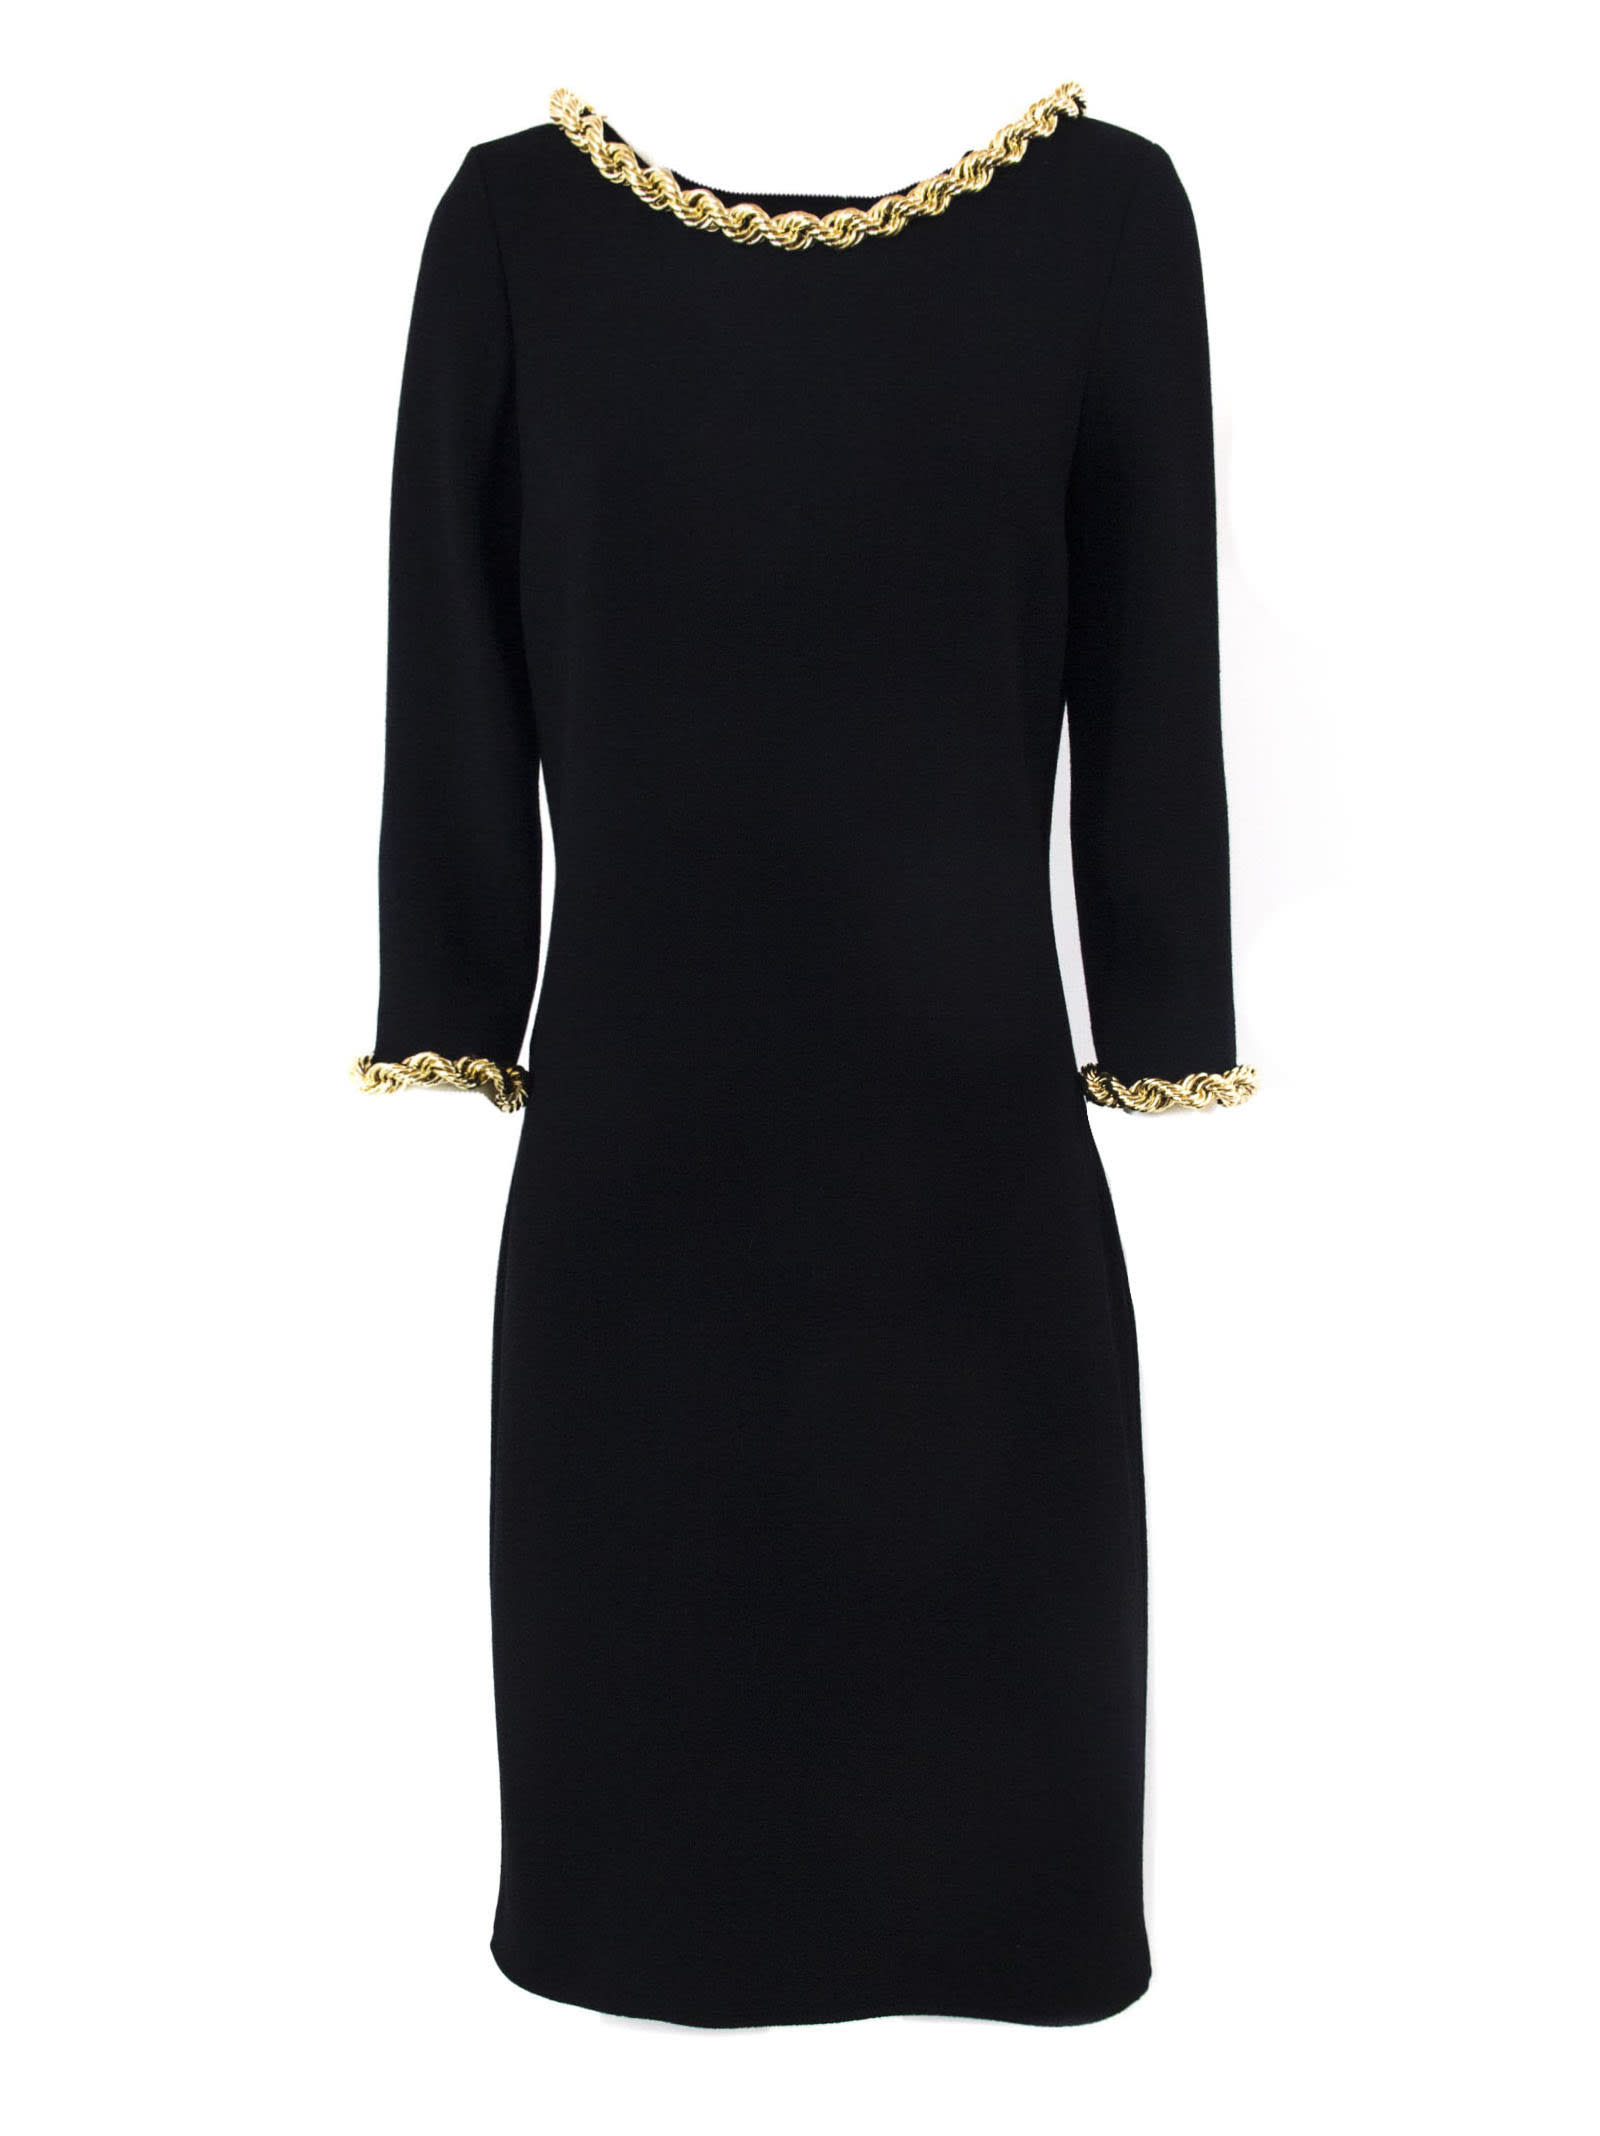 Moschino Black Virgin Wool Dress